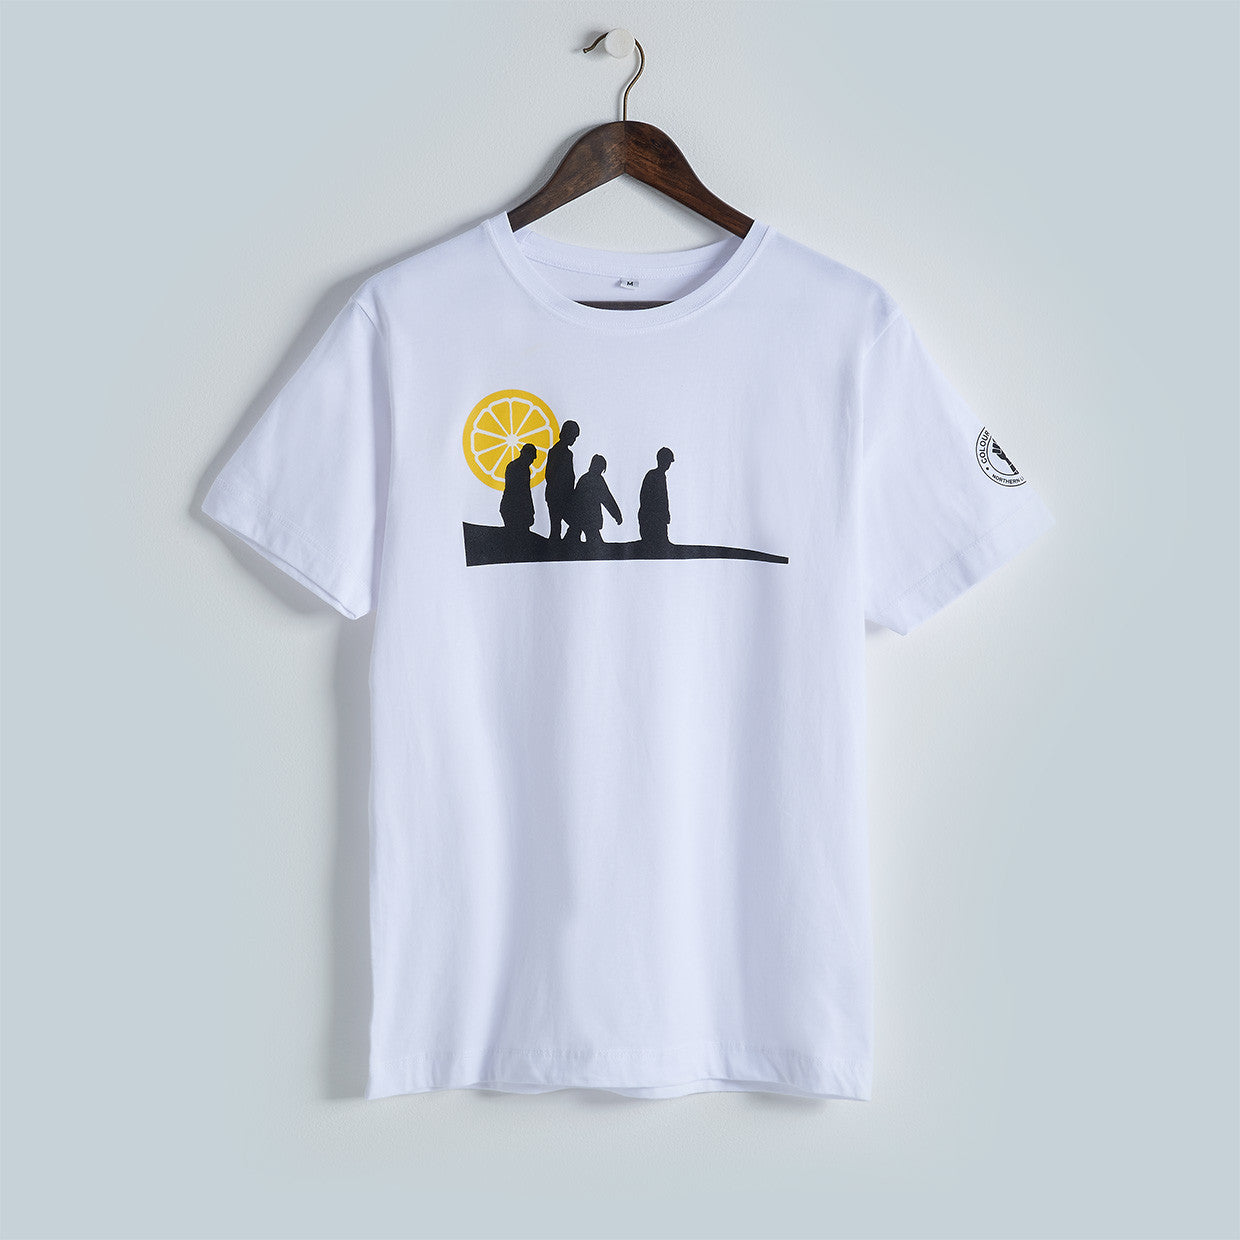 Stone Roses inspired music T-shirt silk-screen printed by hand onto 100% cotton top quality ethical T-shirts.